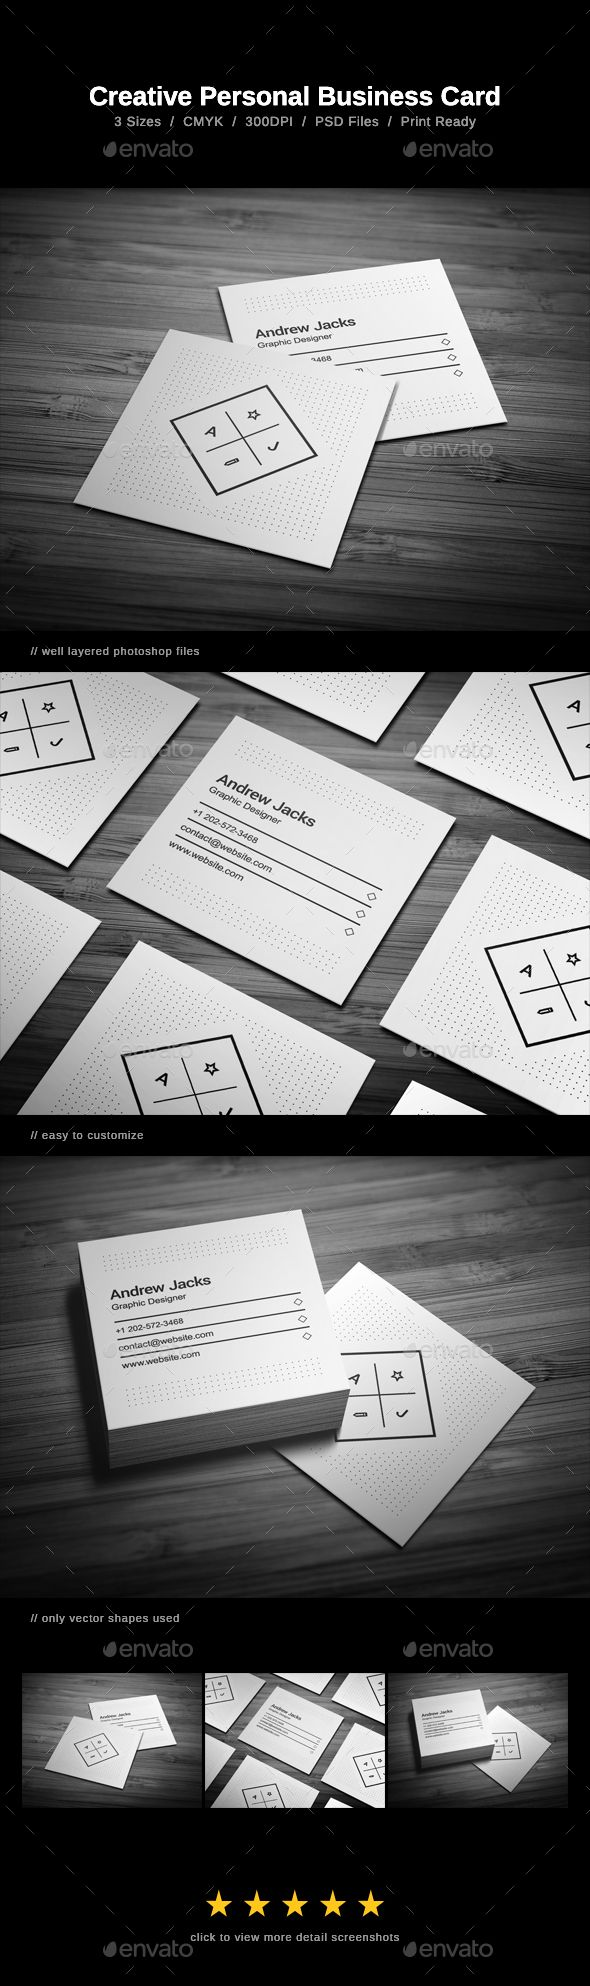 #Creative Personal Business Card - #Business #Cards Print Templates